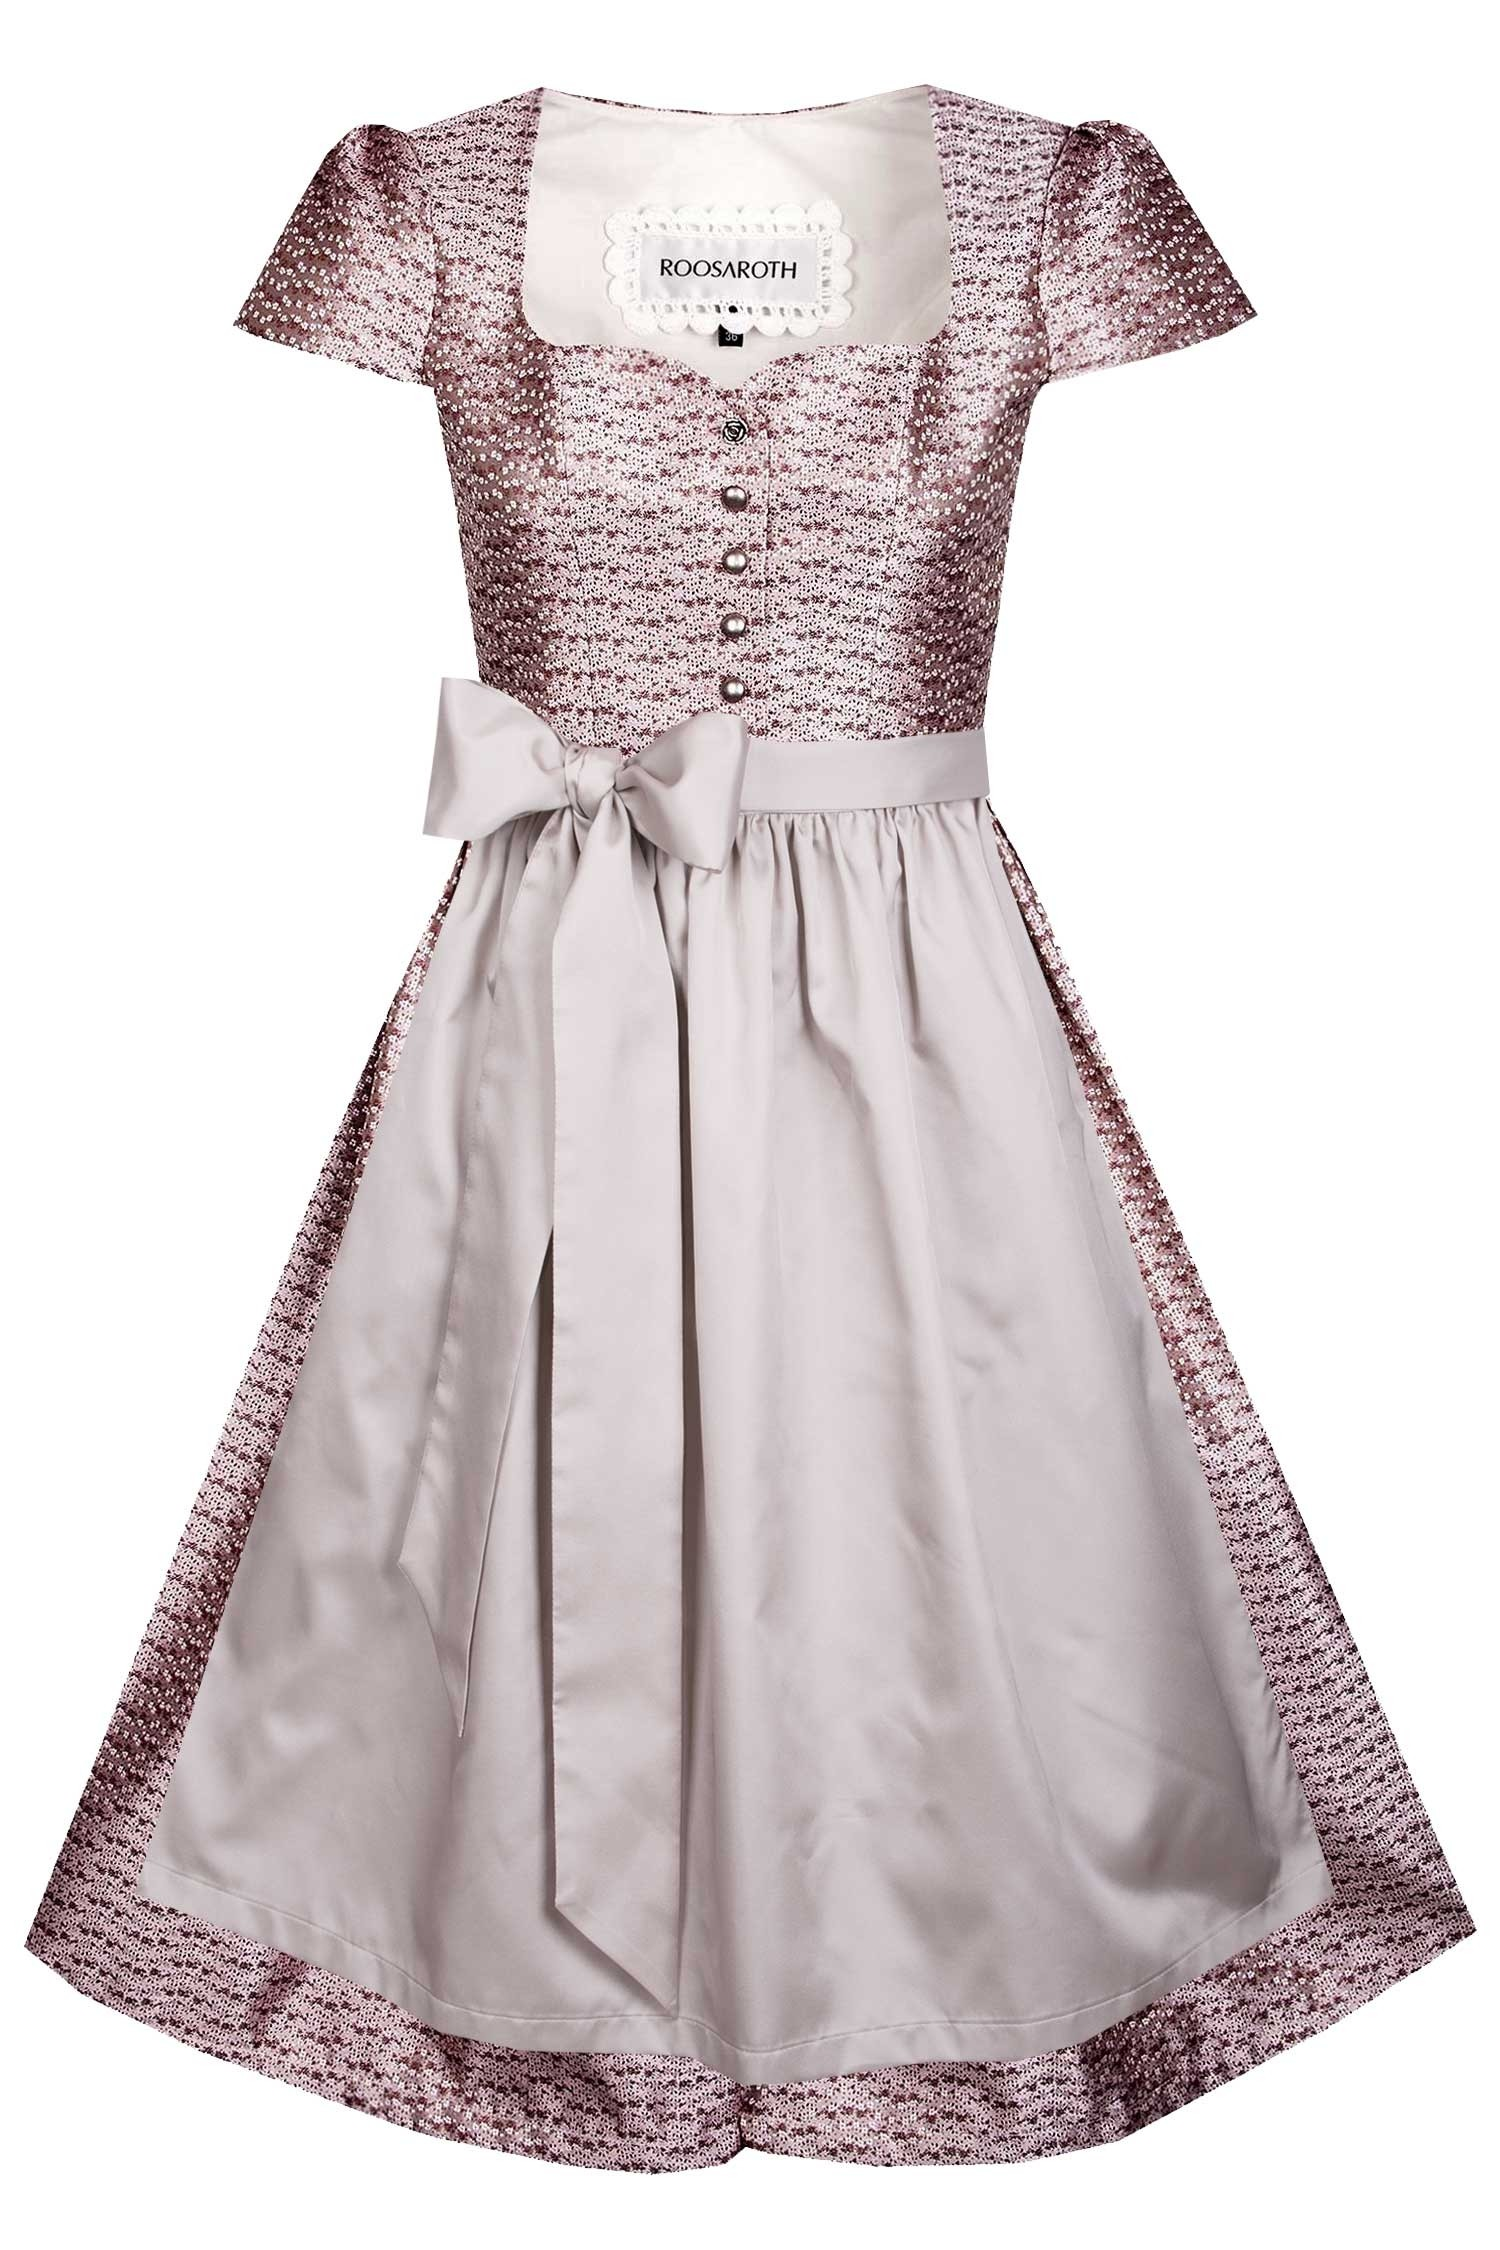 DIRNDLKLEID VIOLET ROSE DUST